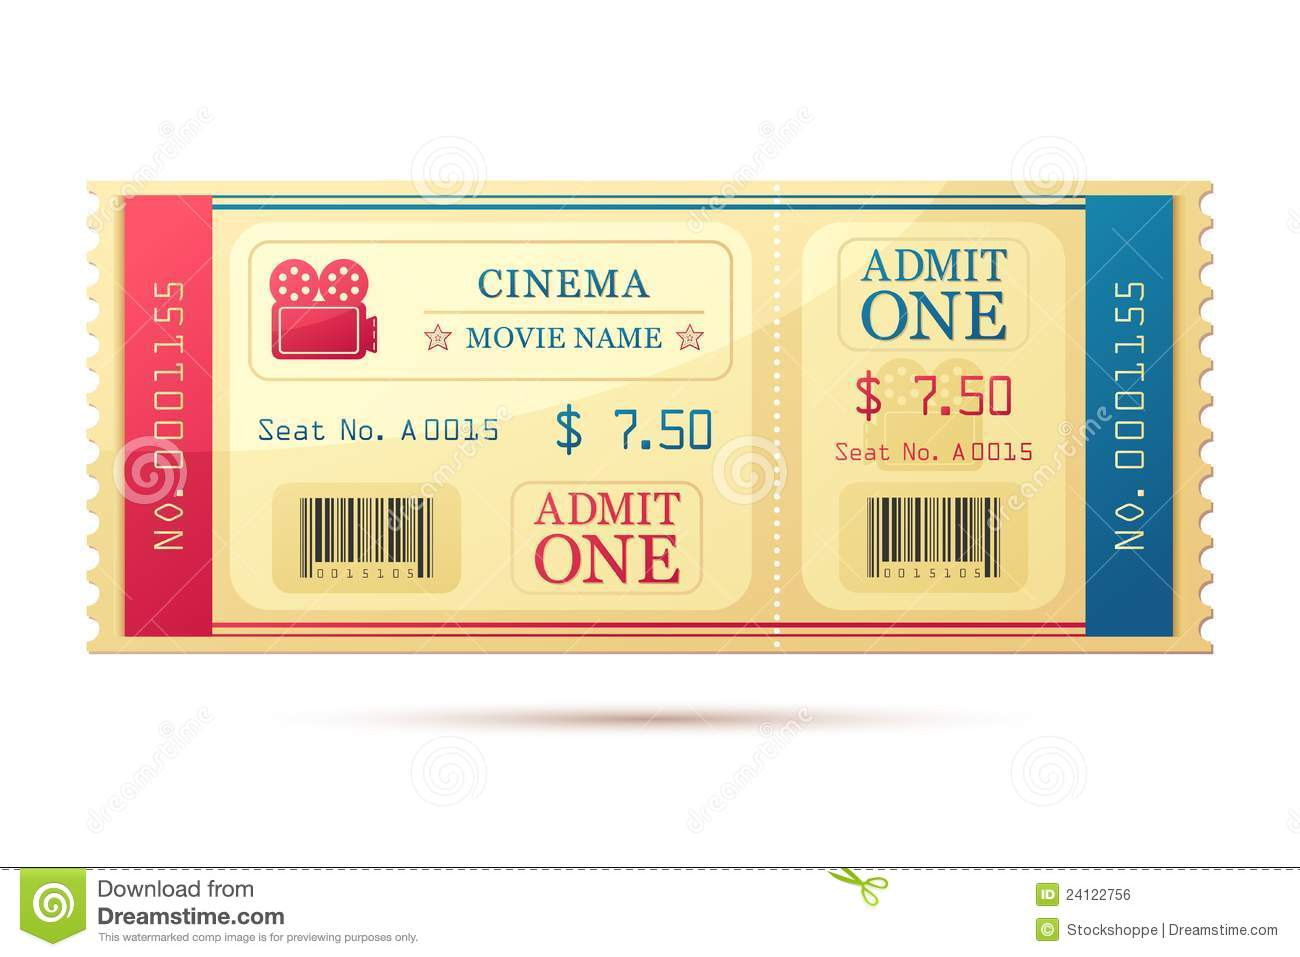 Movie Tickets Movie Ticket Royalty Free